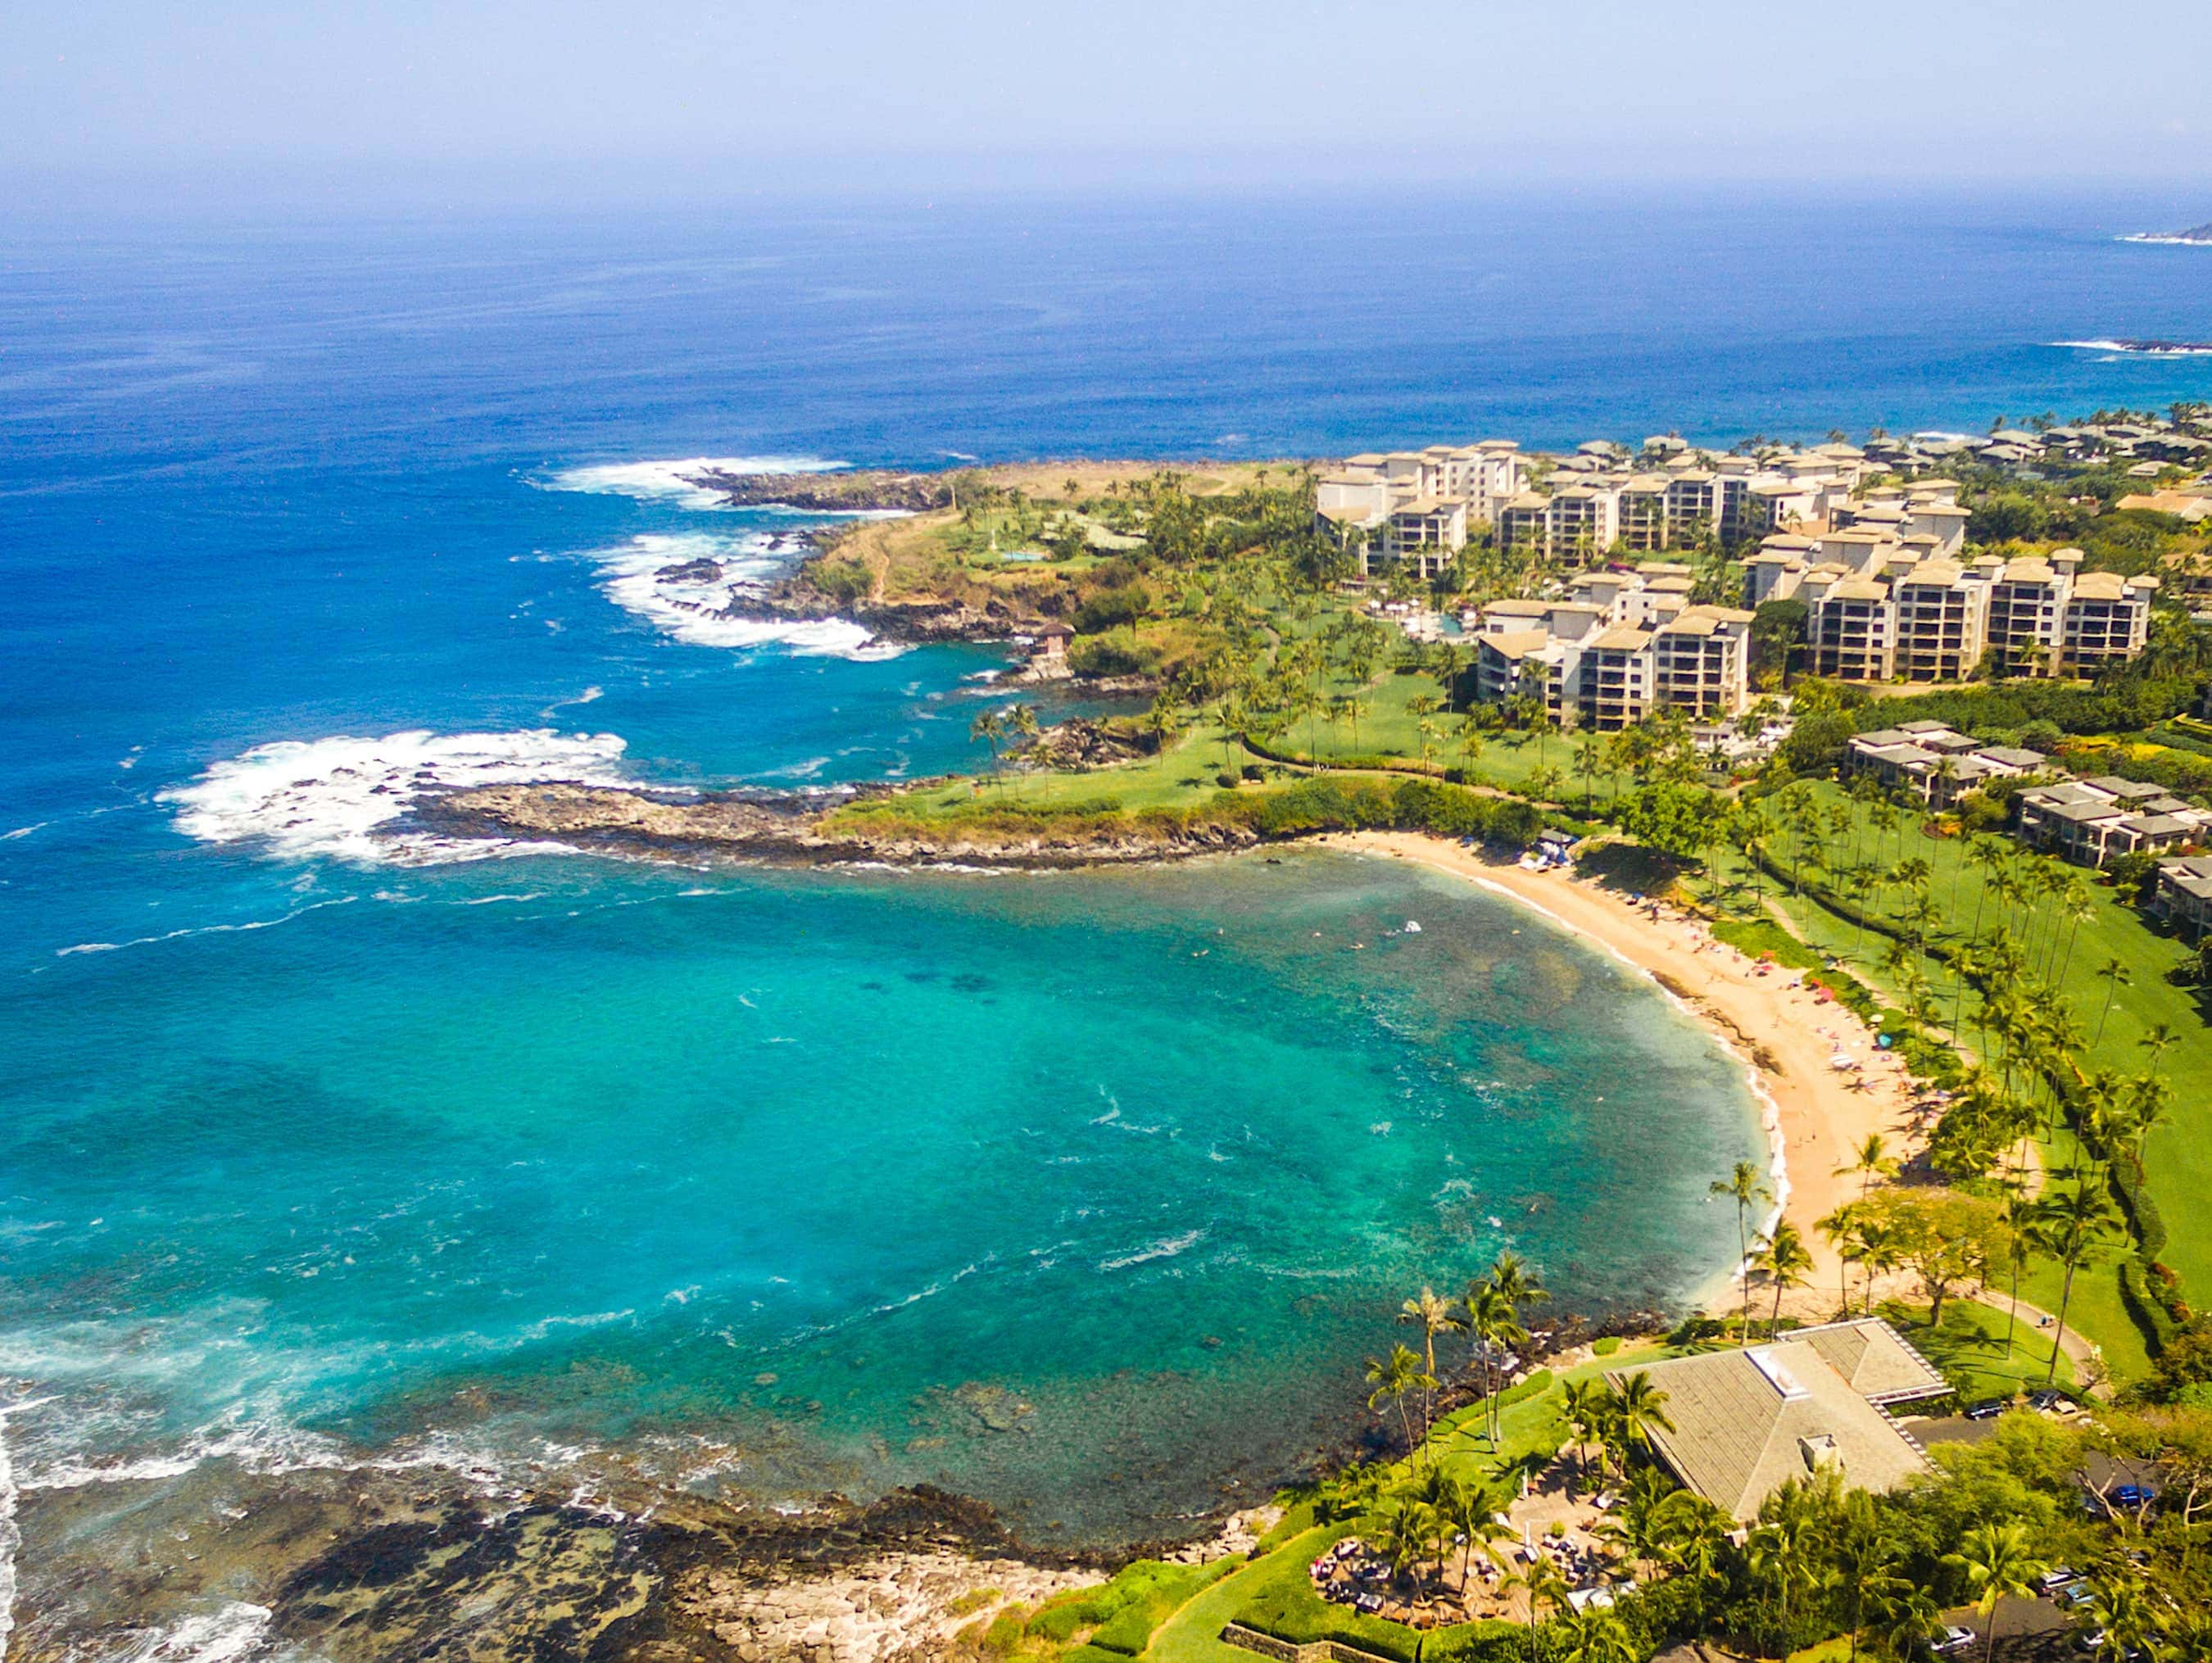 Overlooking The White Sandy Crescent Beach Of Kapalua Bay Residences On Offer A Luxurious Maui Lifestyle With Unparalleled Ocean Views